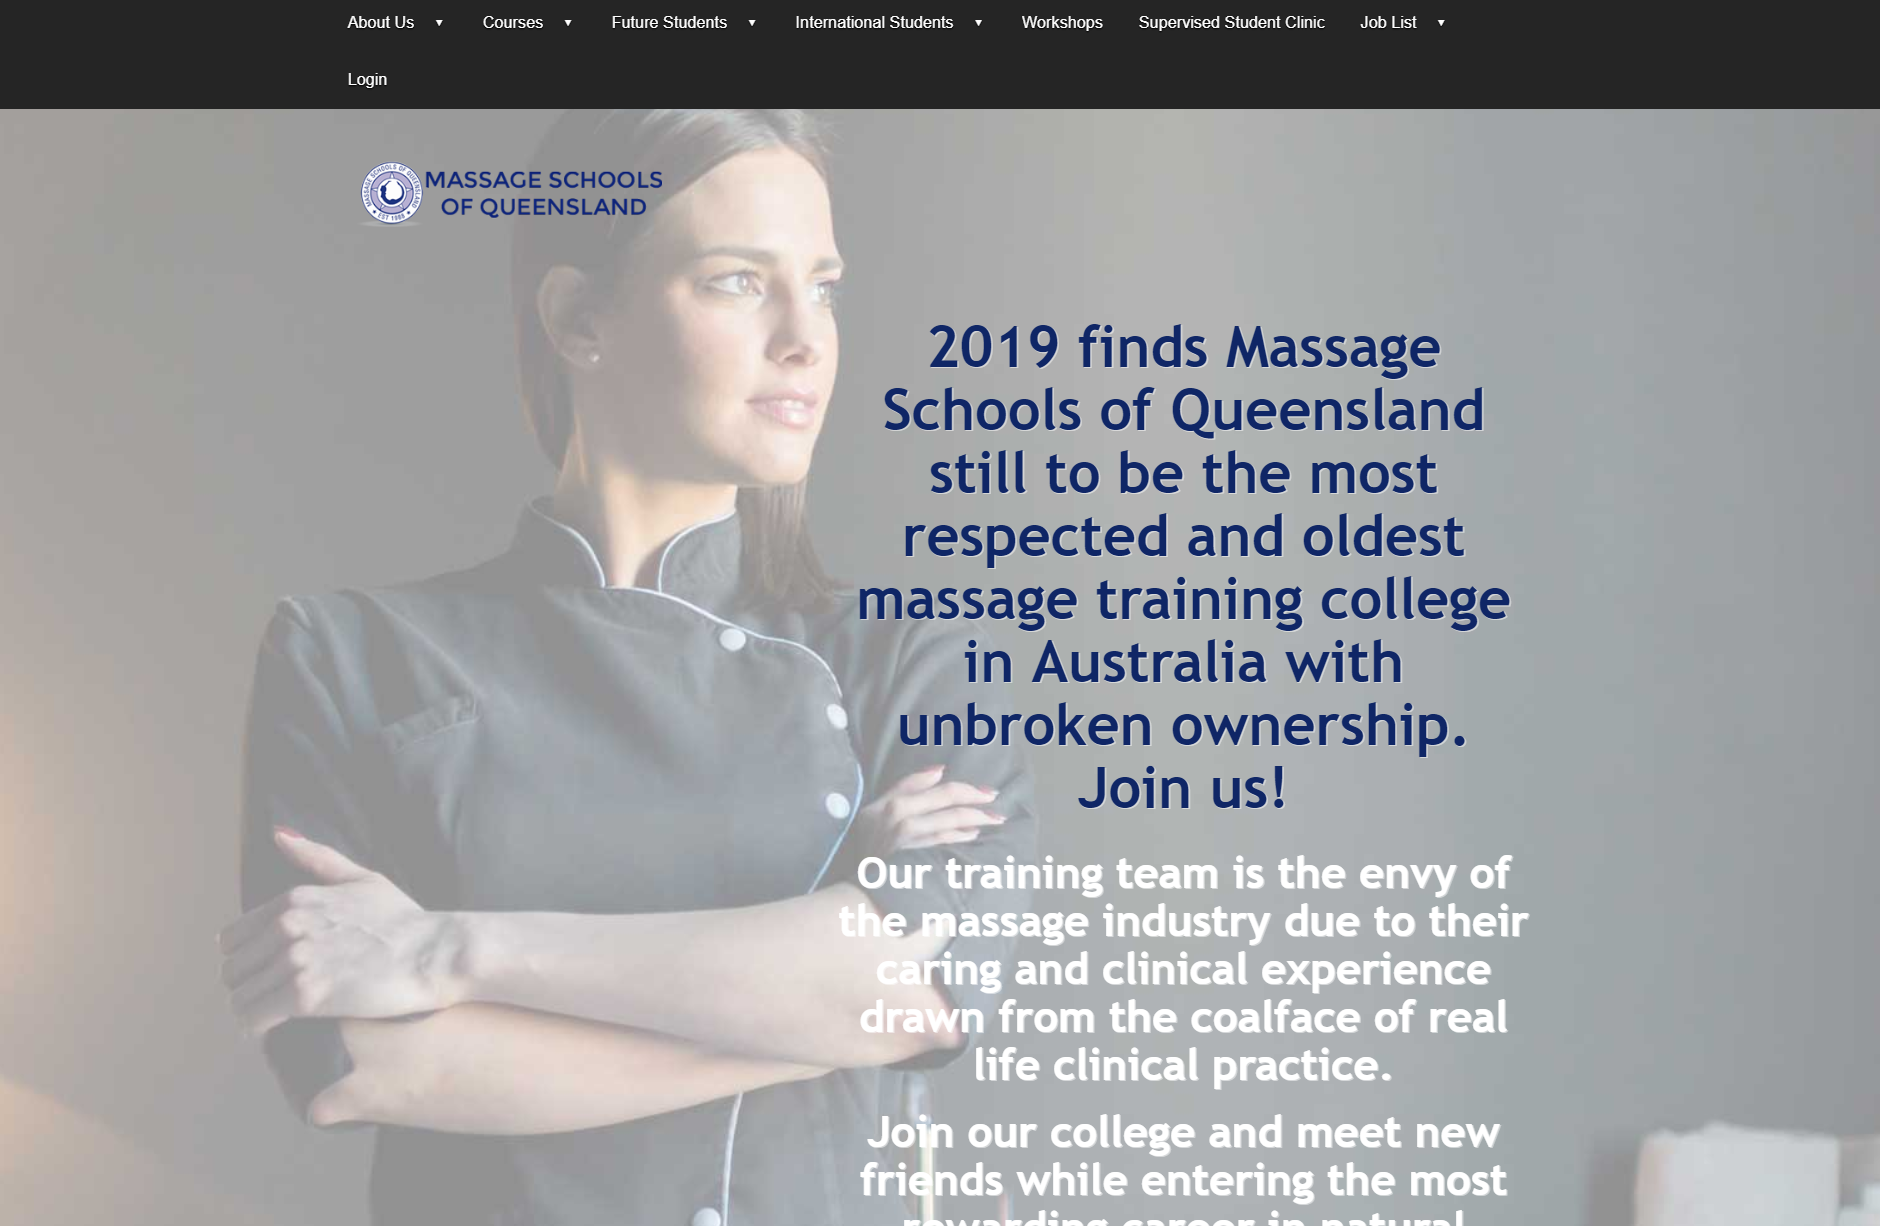 Massage Schools of Queensland(MSQ)